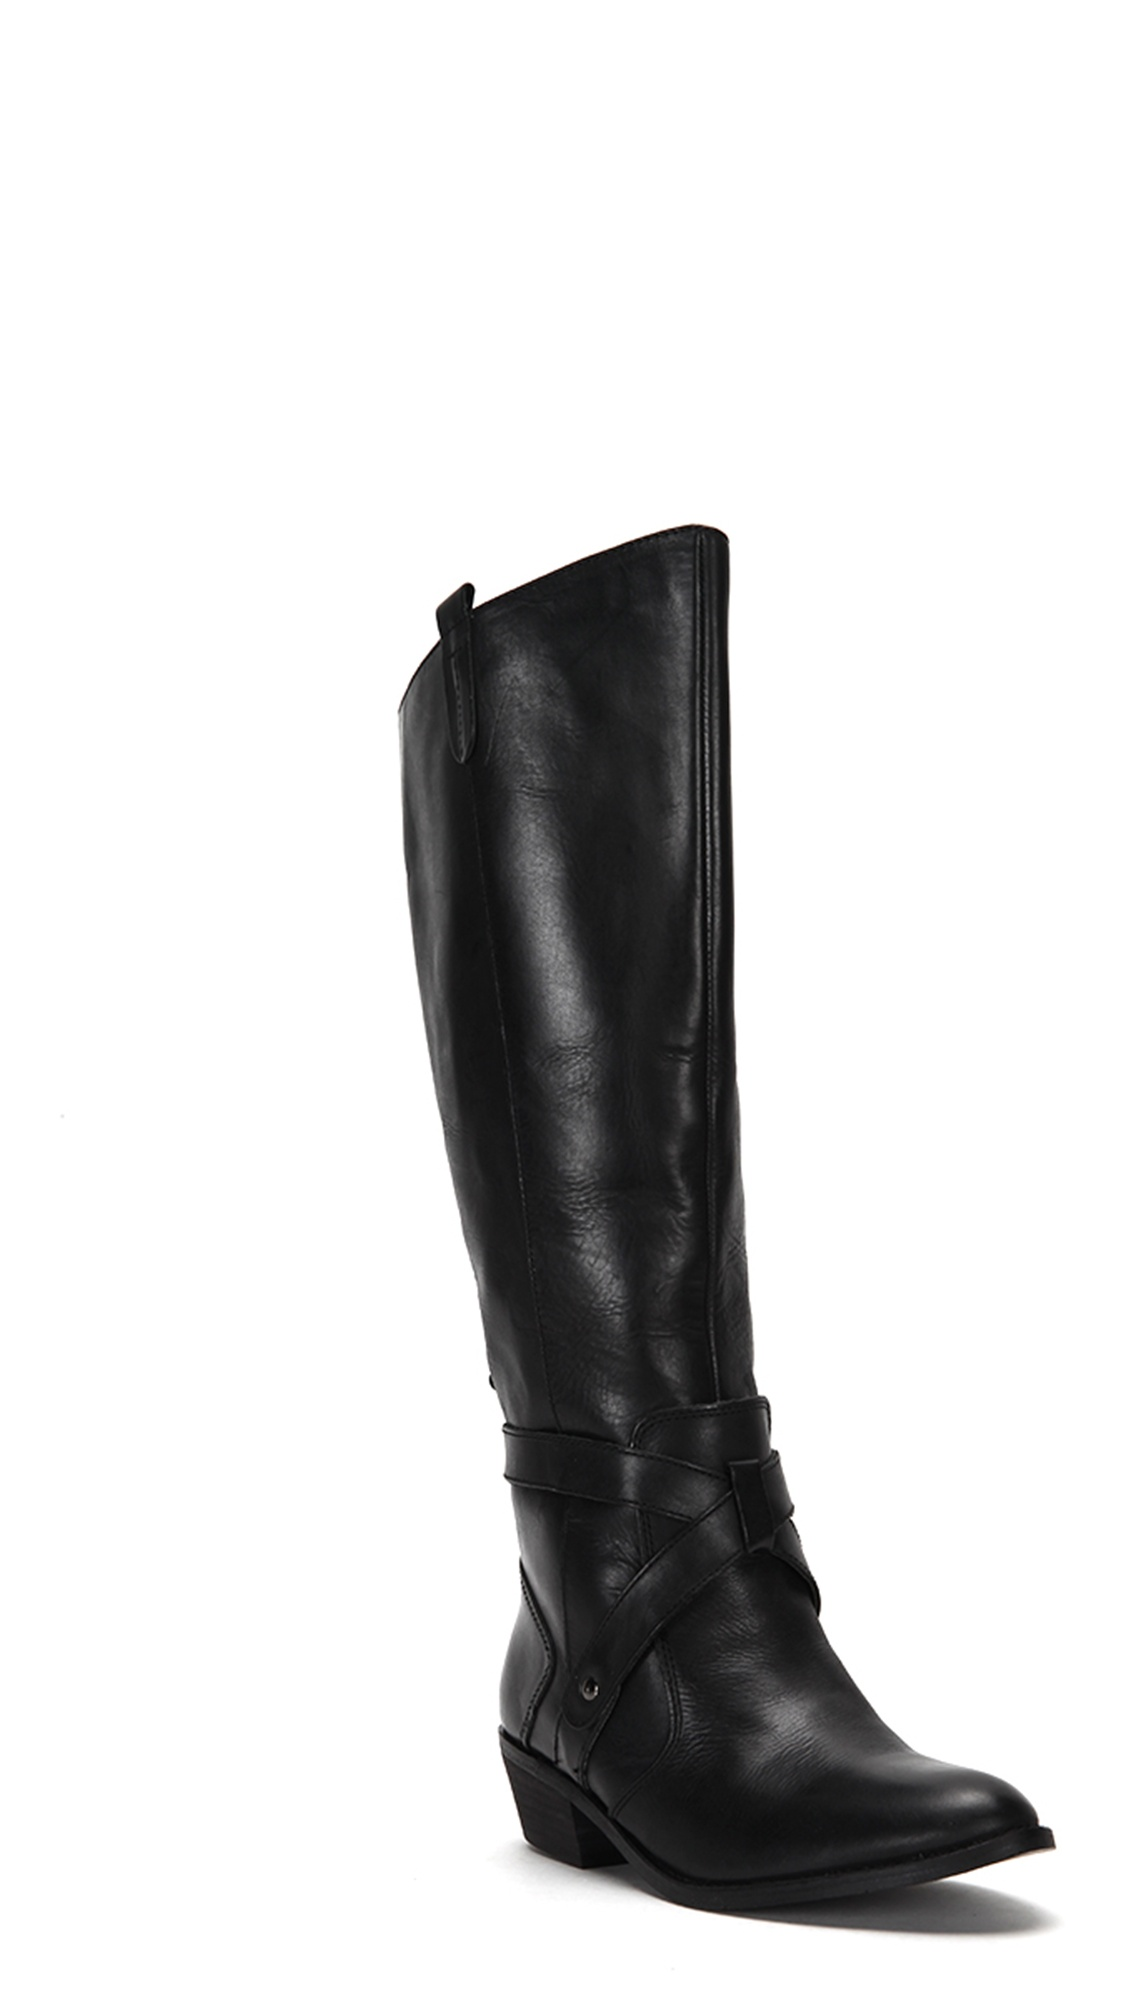 Dolve Vita Women's Clinton Riding Boots CLINTON Black